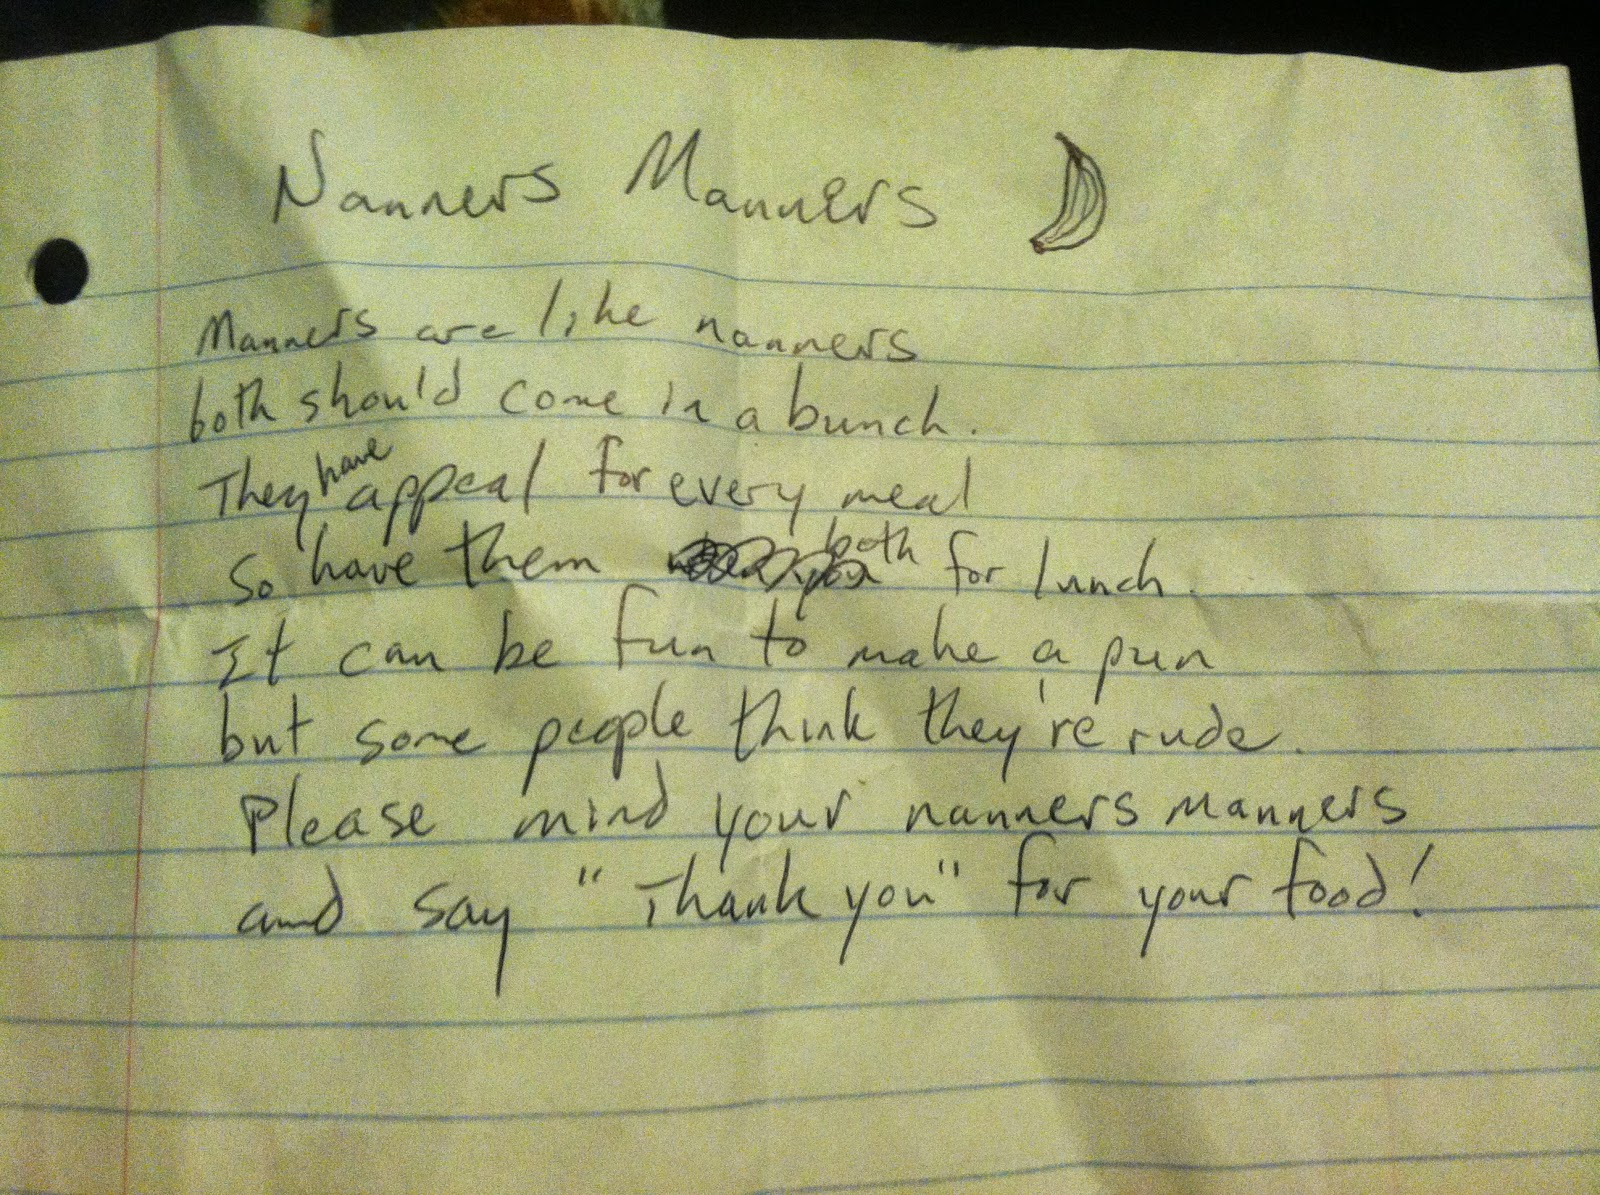 Nanners manners